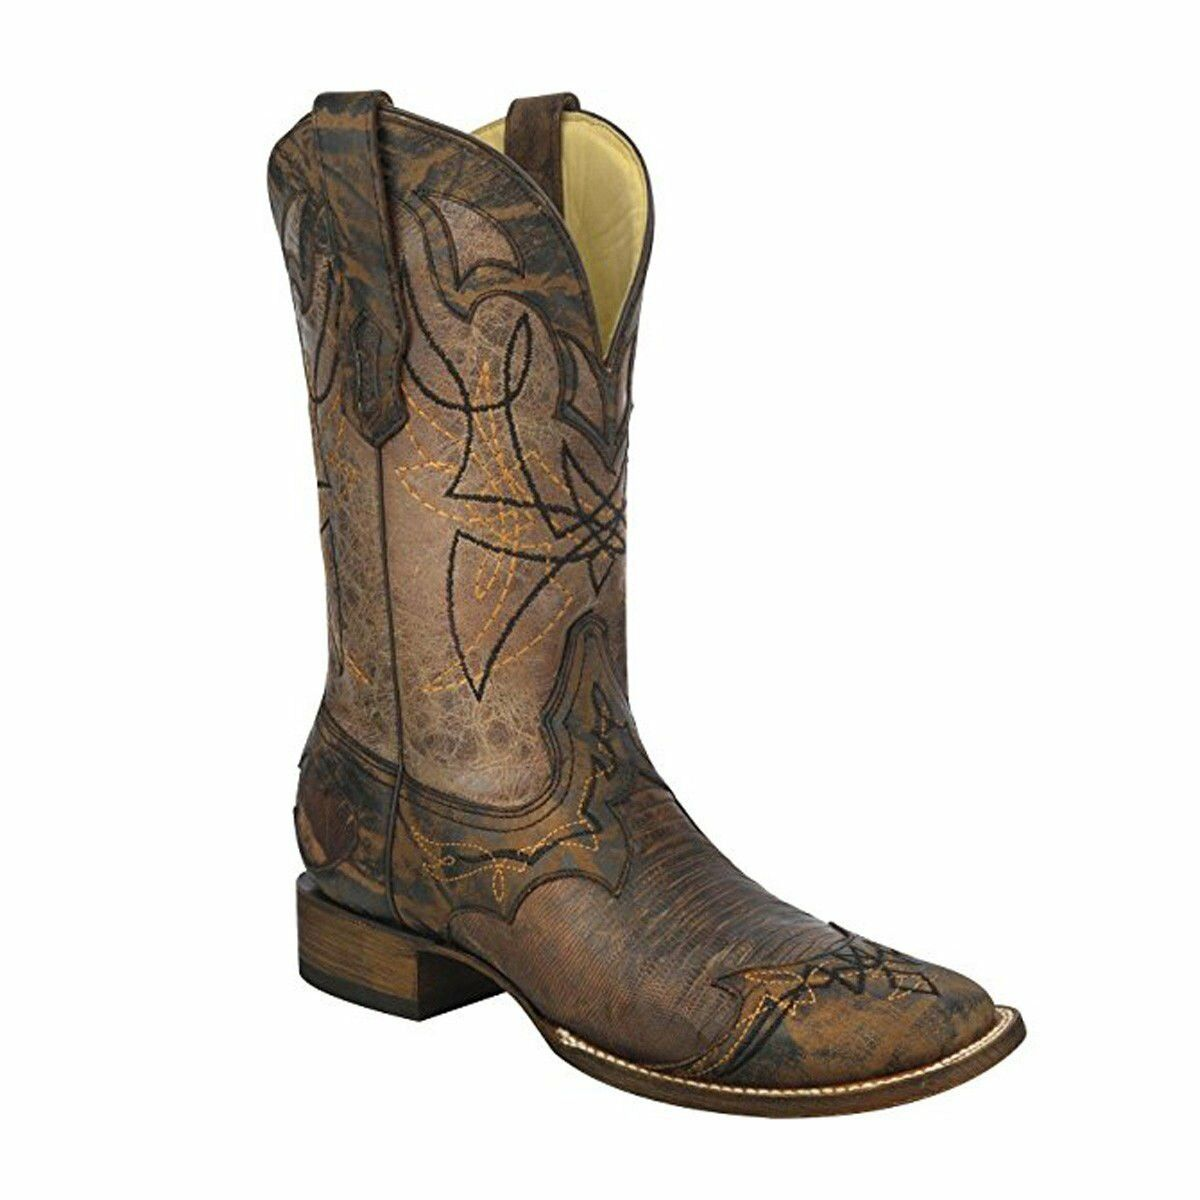 CORRAL Men's Distressed Lizard Cowboy Boot Wide Square Toe - A3096